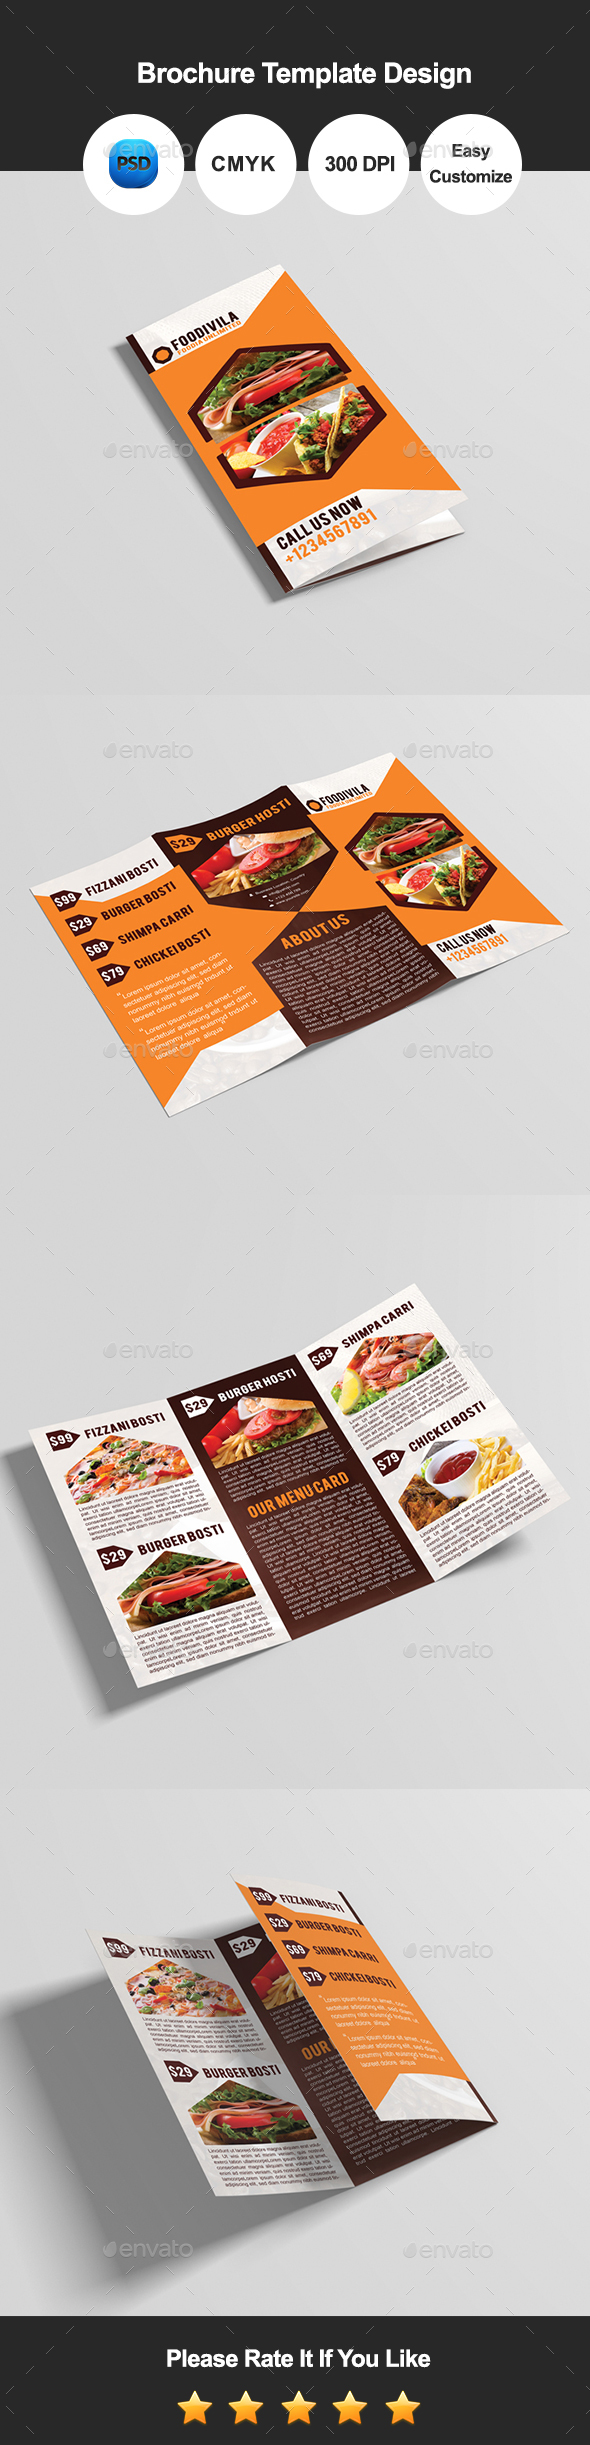 Foodivila Tri Fold Food & Restaurant Brochure Template Design - Catalogs Brochures